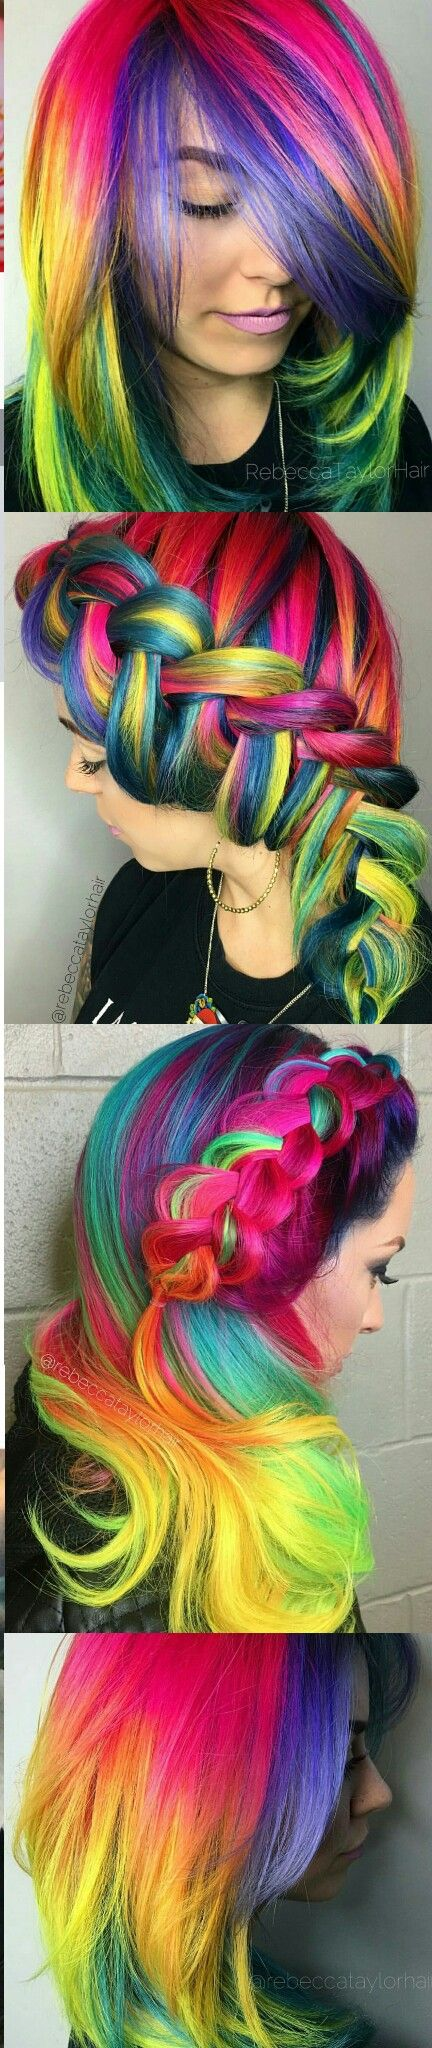 Rainbow dyed hair @rebeccataylorhair